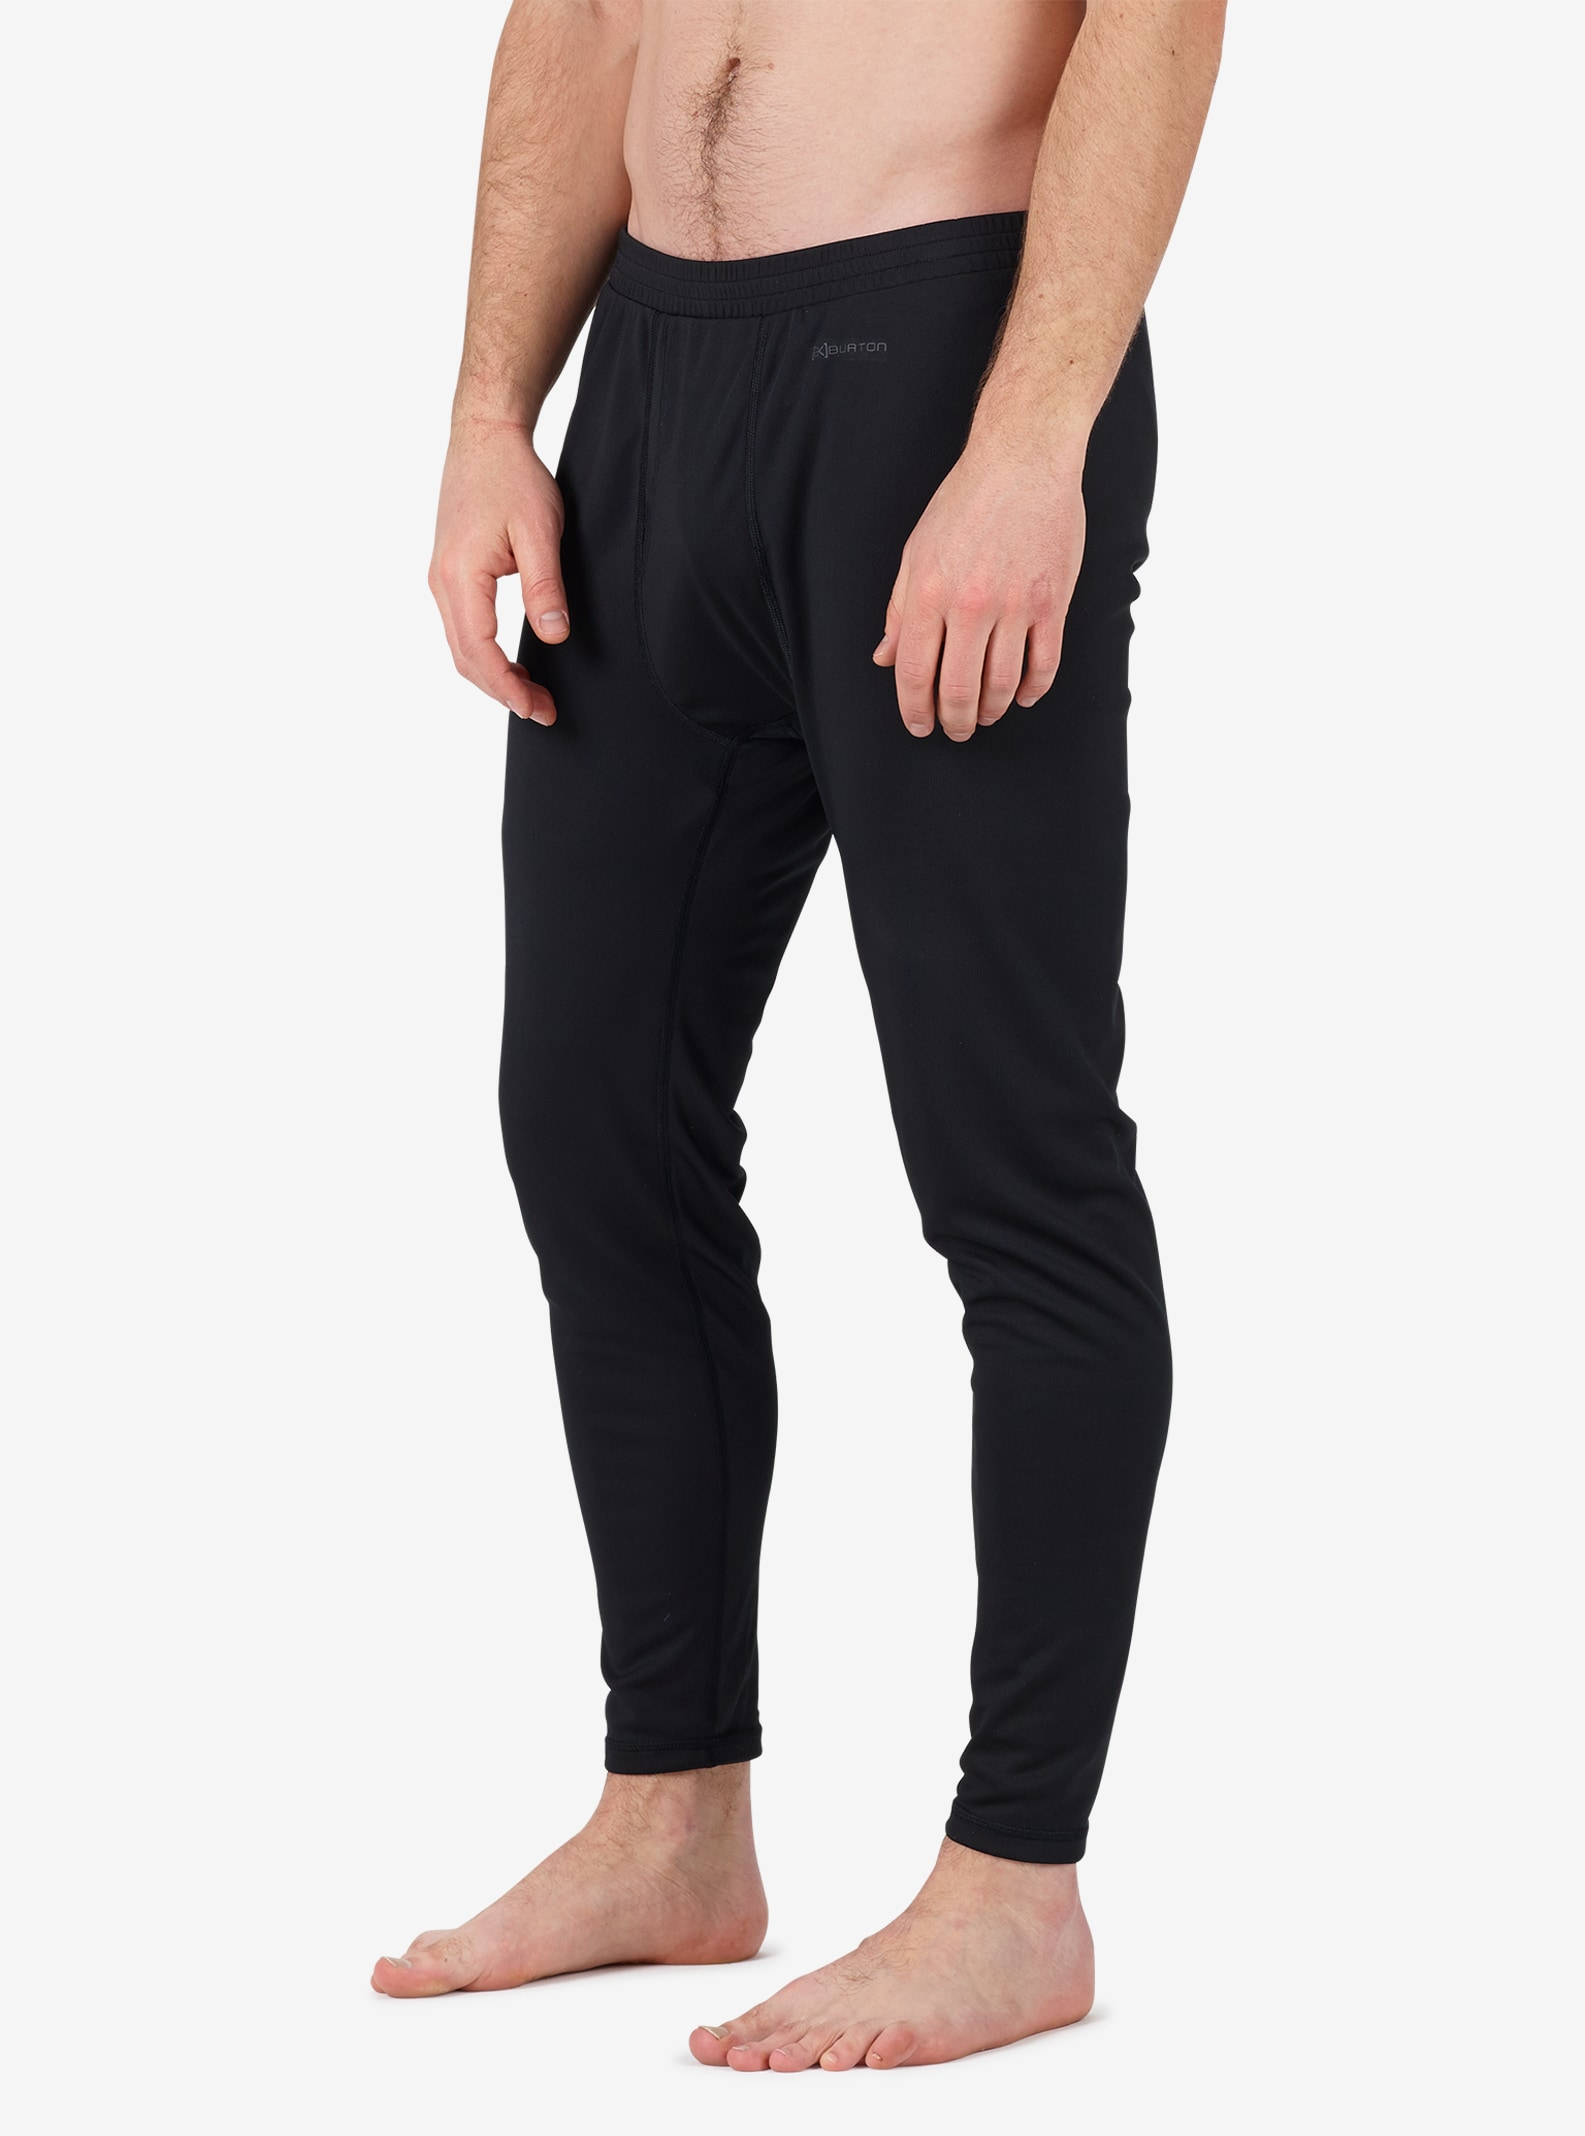 Men's Burton [ak] Power Grid® Pant shown in True Black